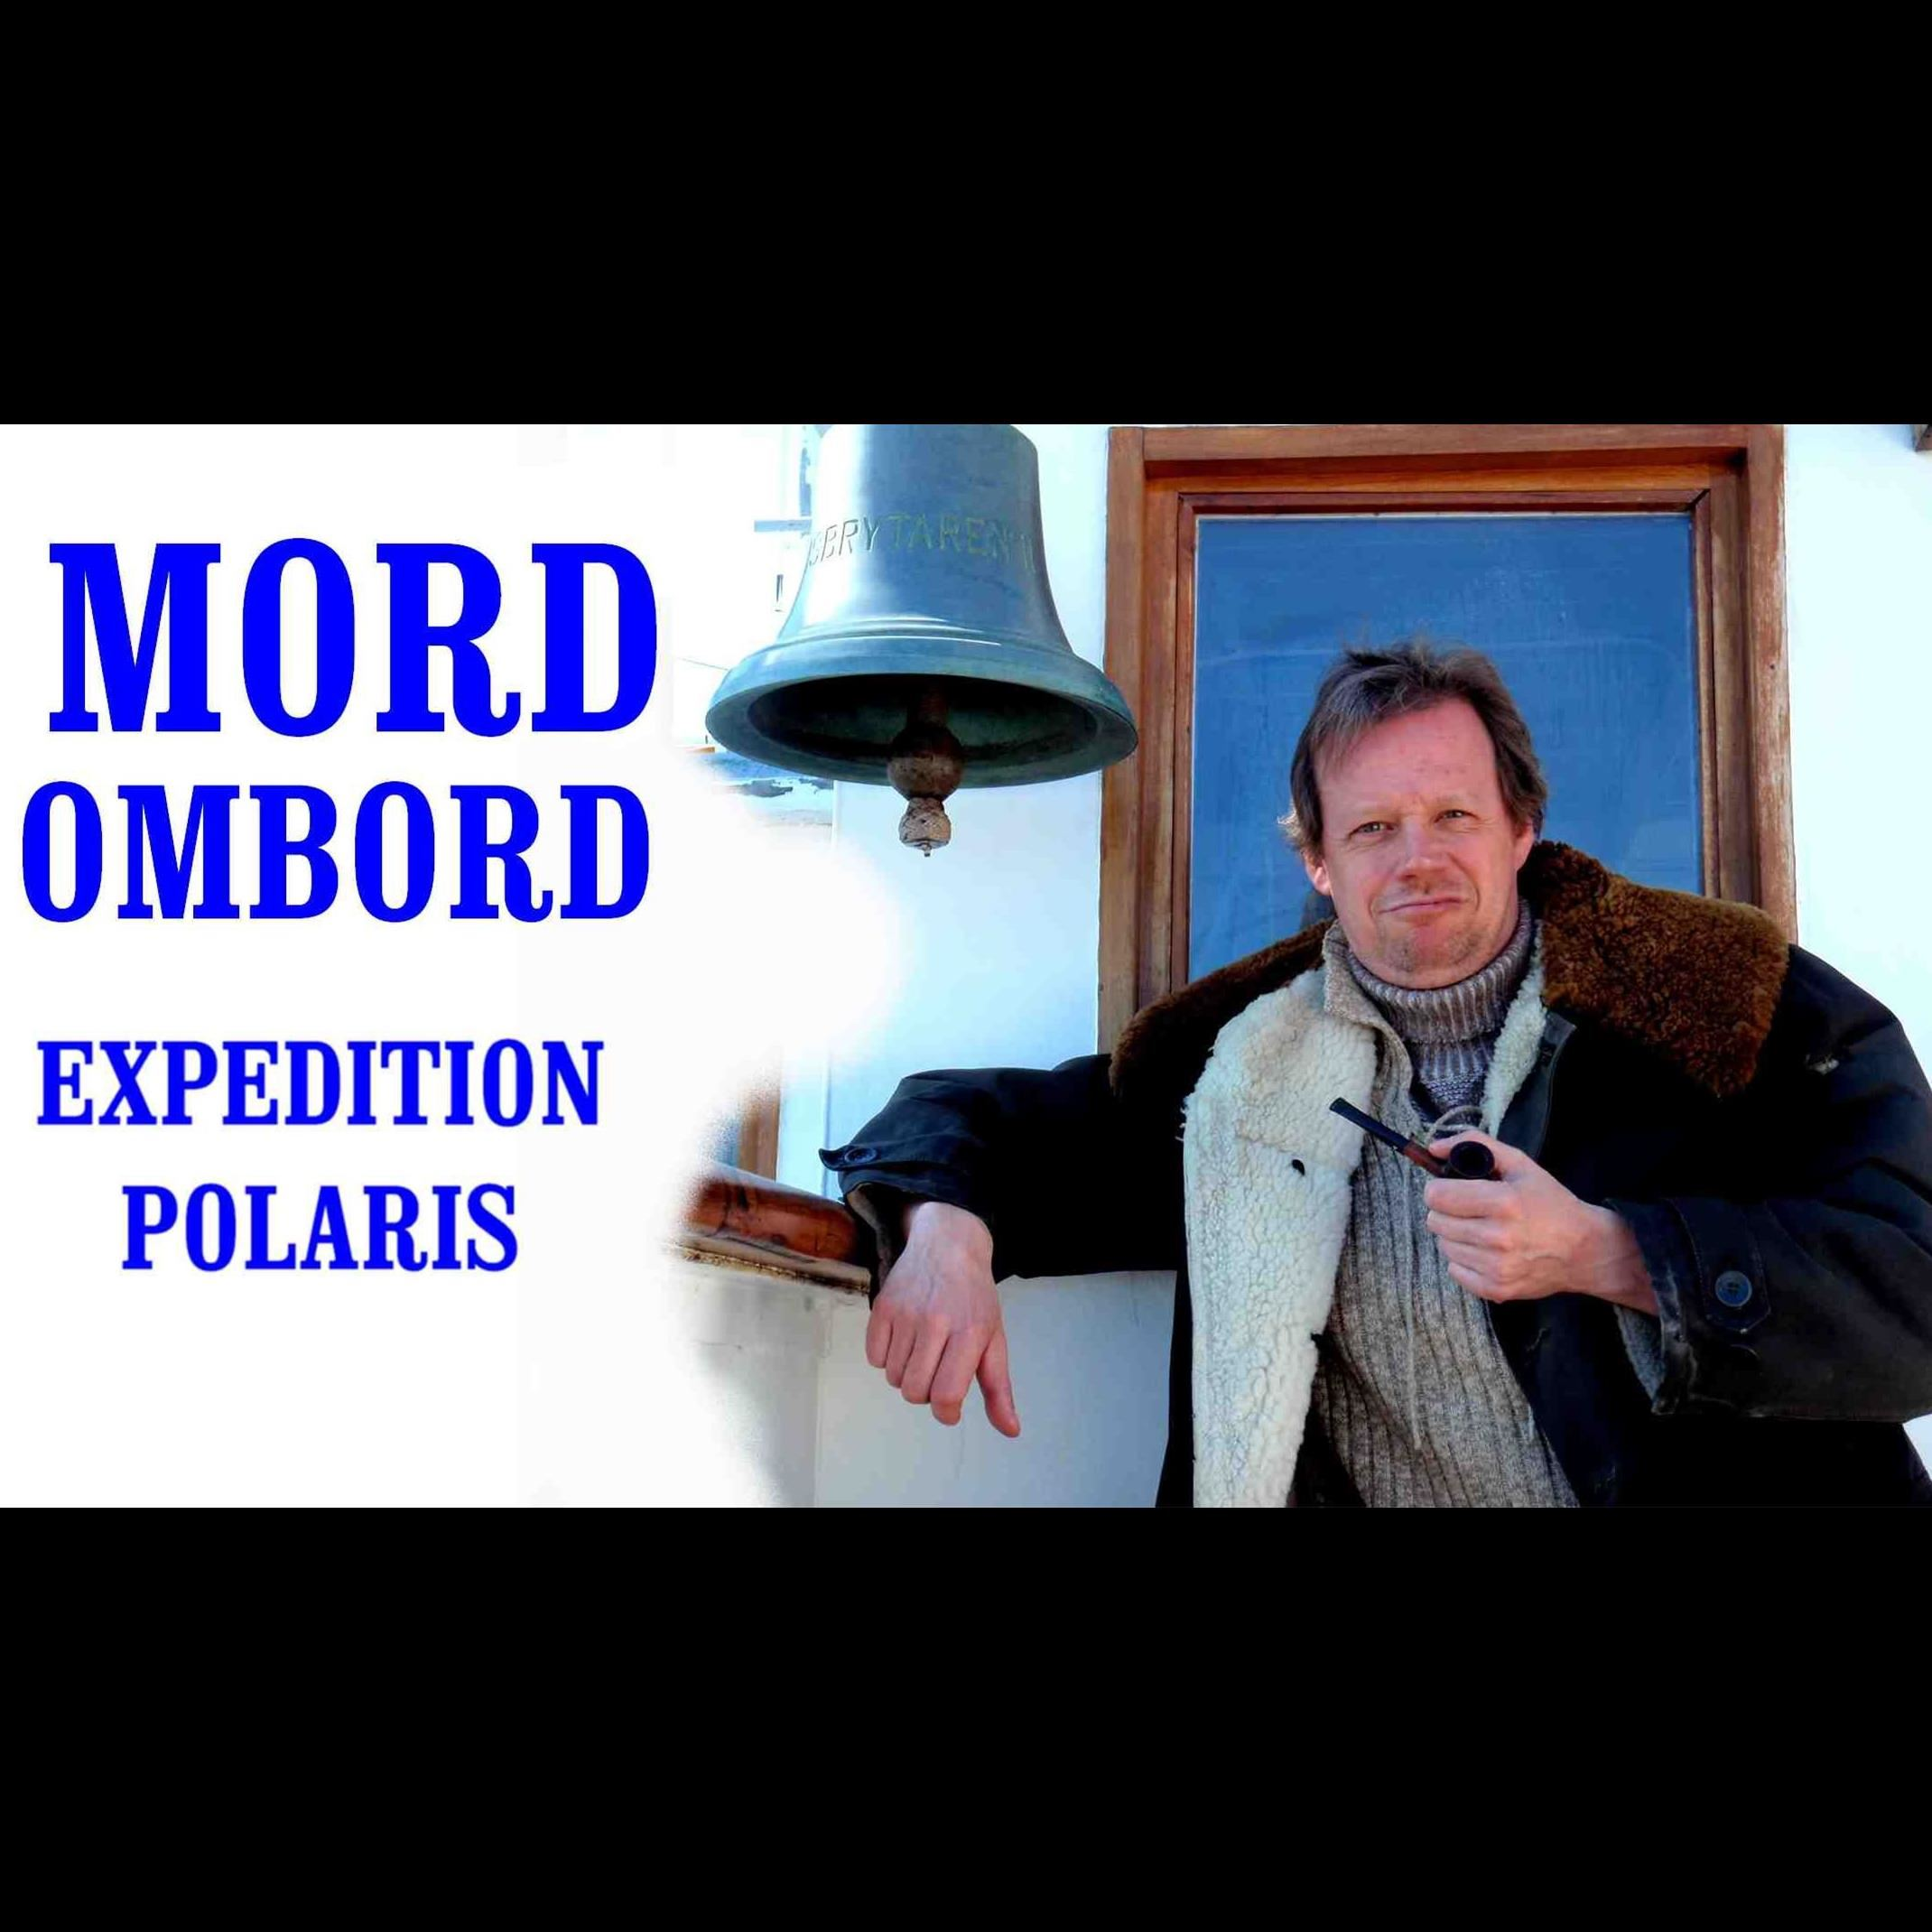 Mord ombord - Expedition Polaris